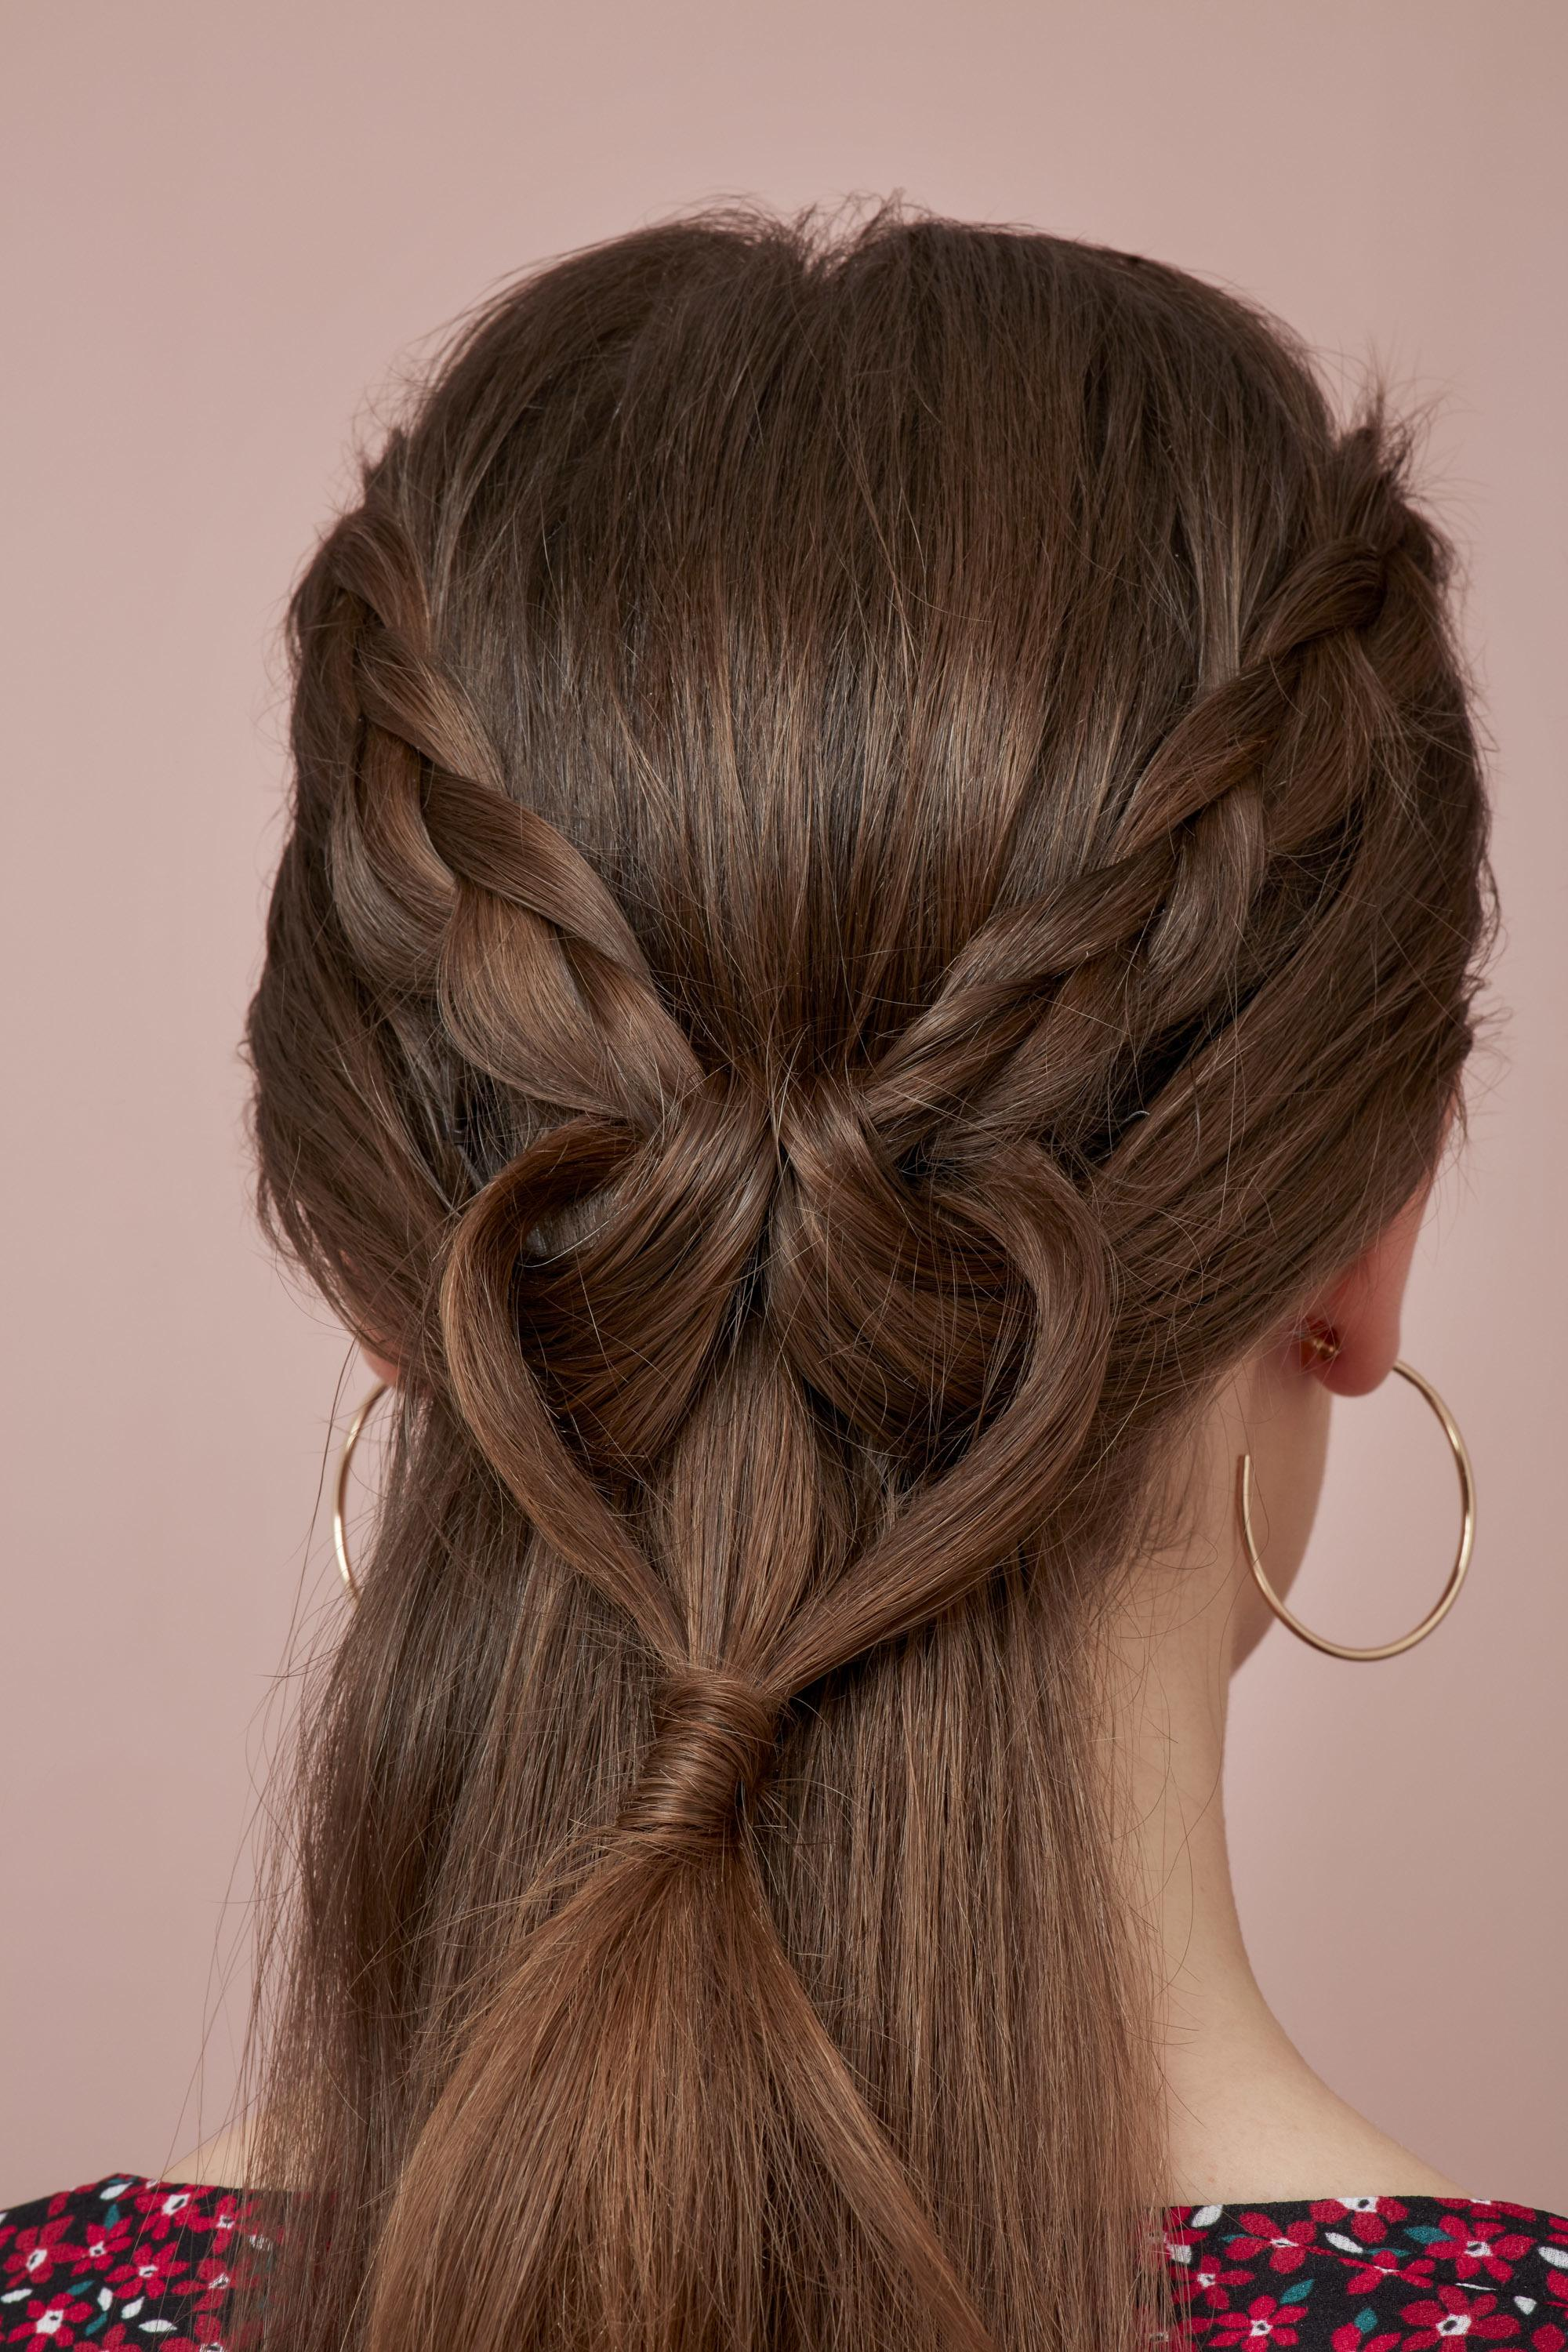 Valentines hair: Close-up back view of a brunette with a half-up braided hairstyle in the shape of a love heart